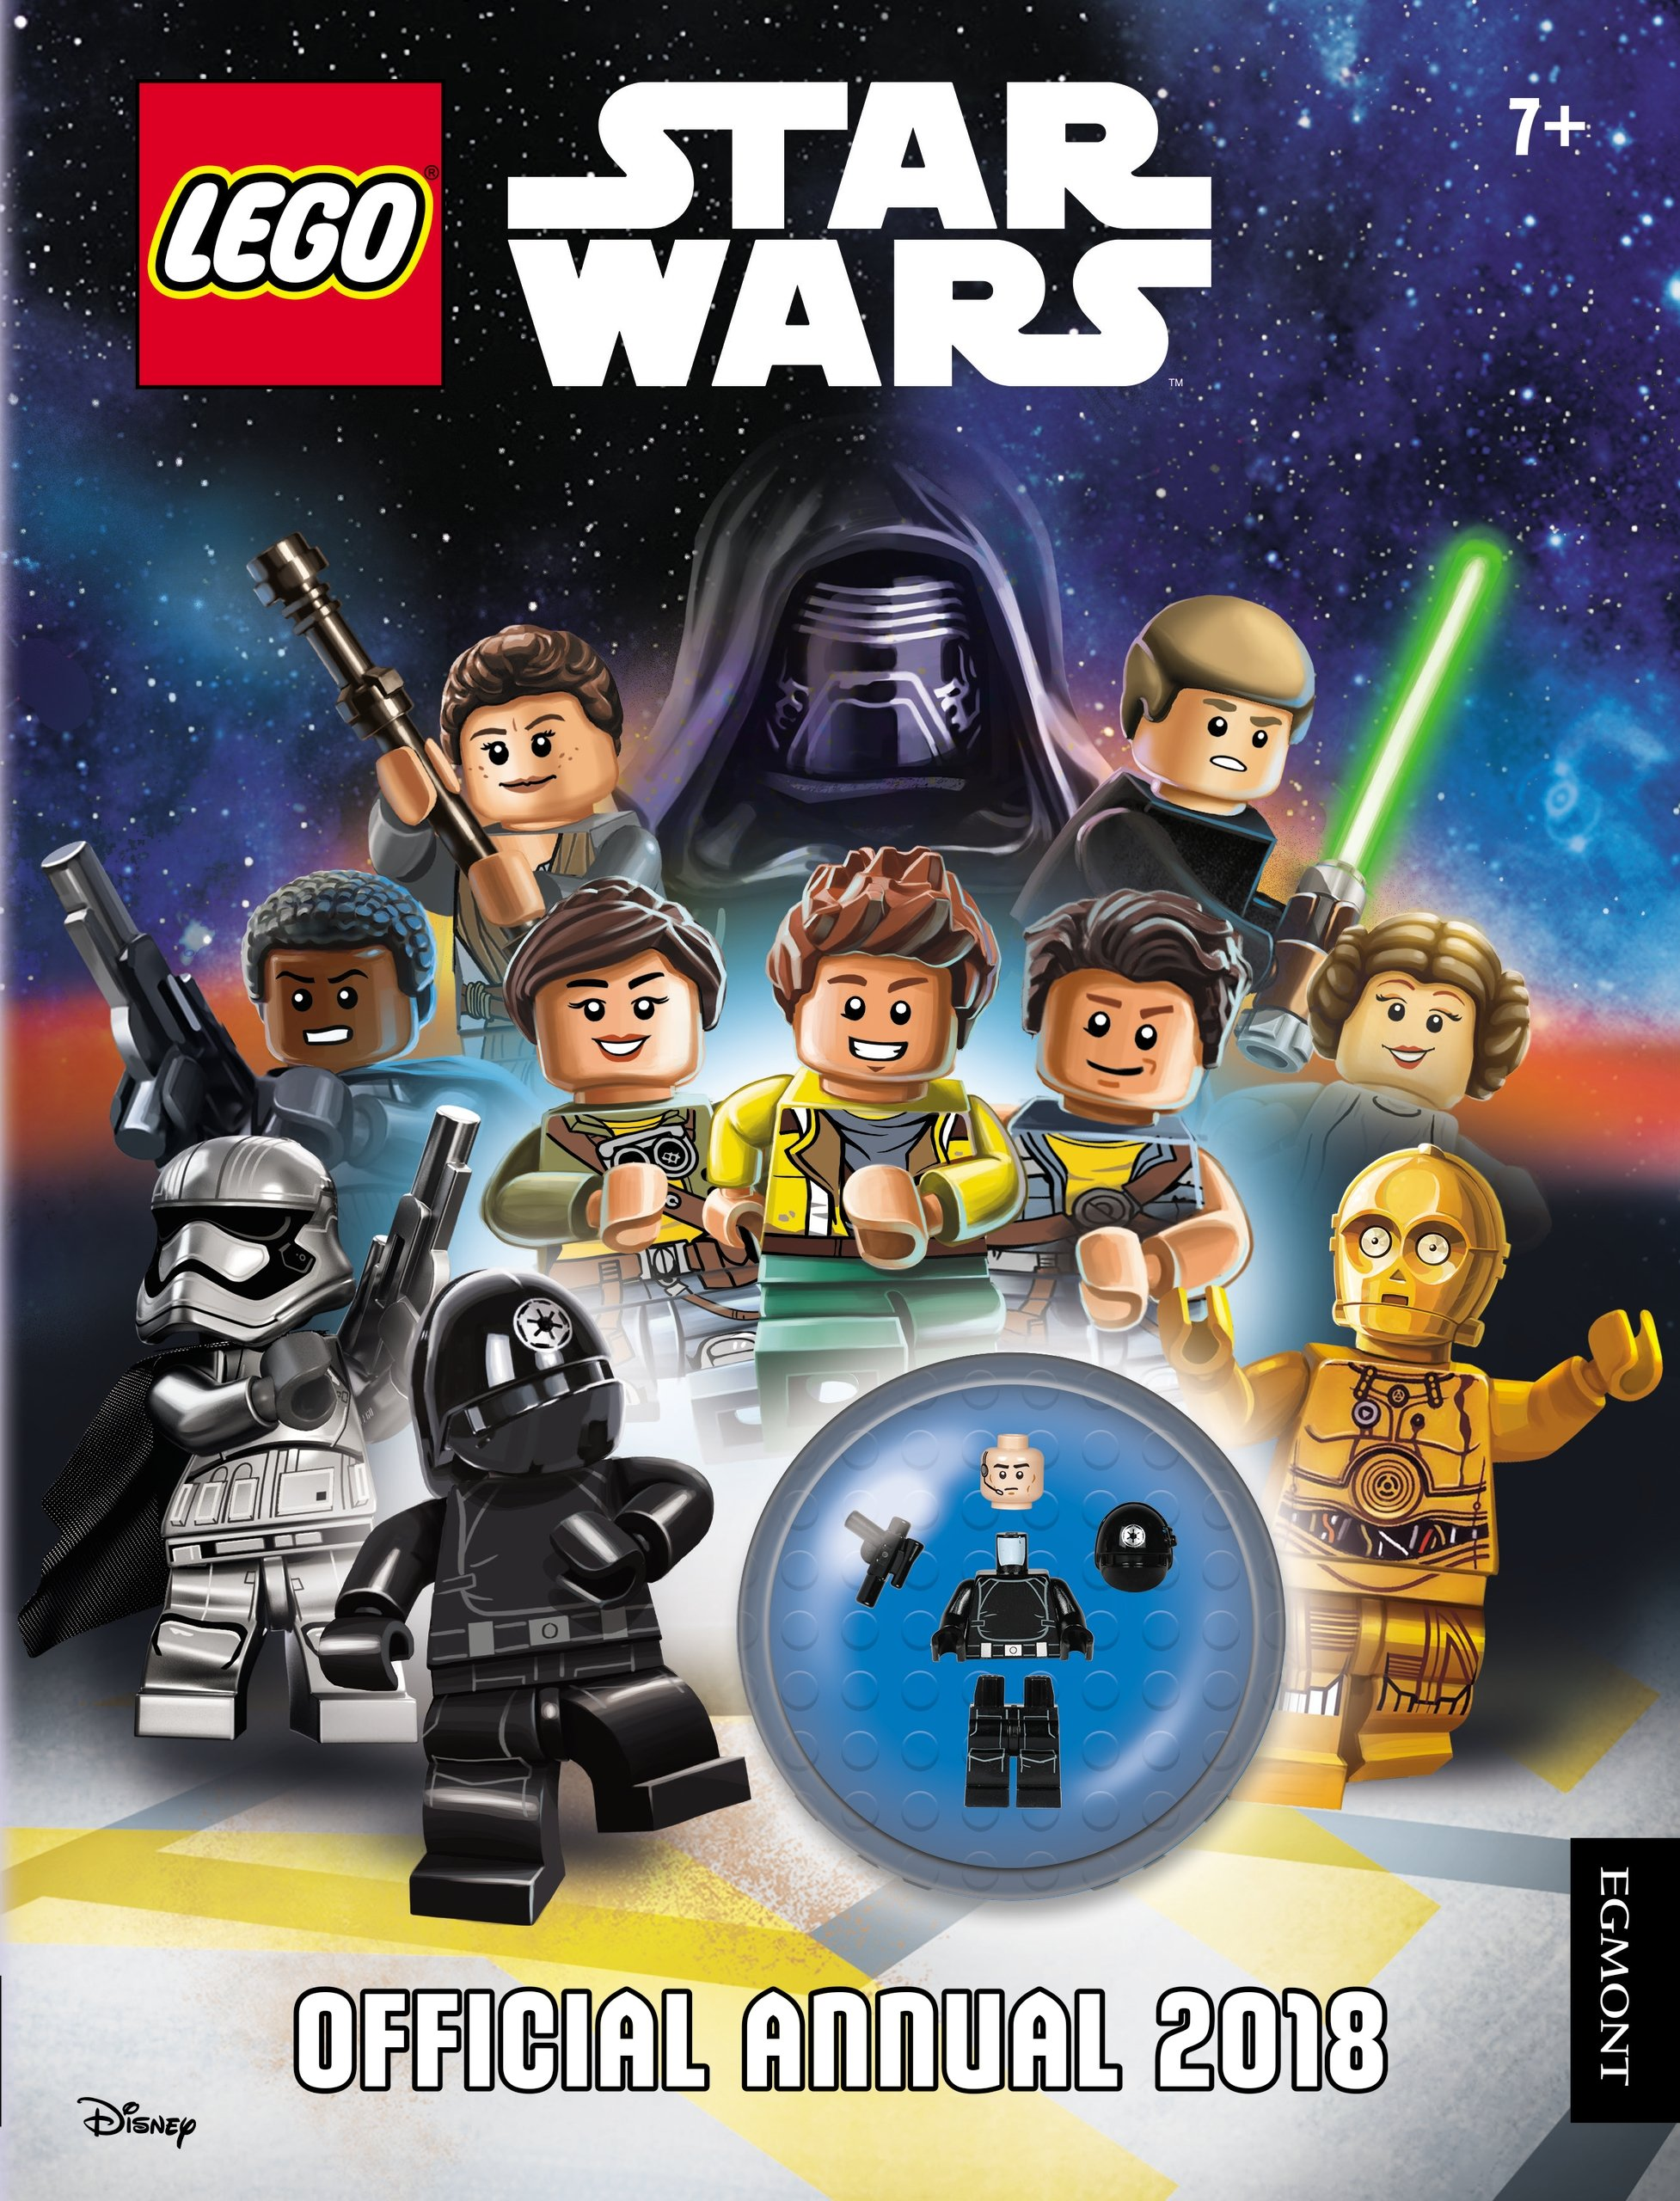 Lego Star Wars Official Annual 2018